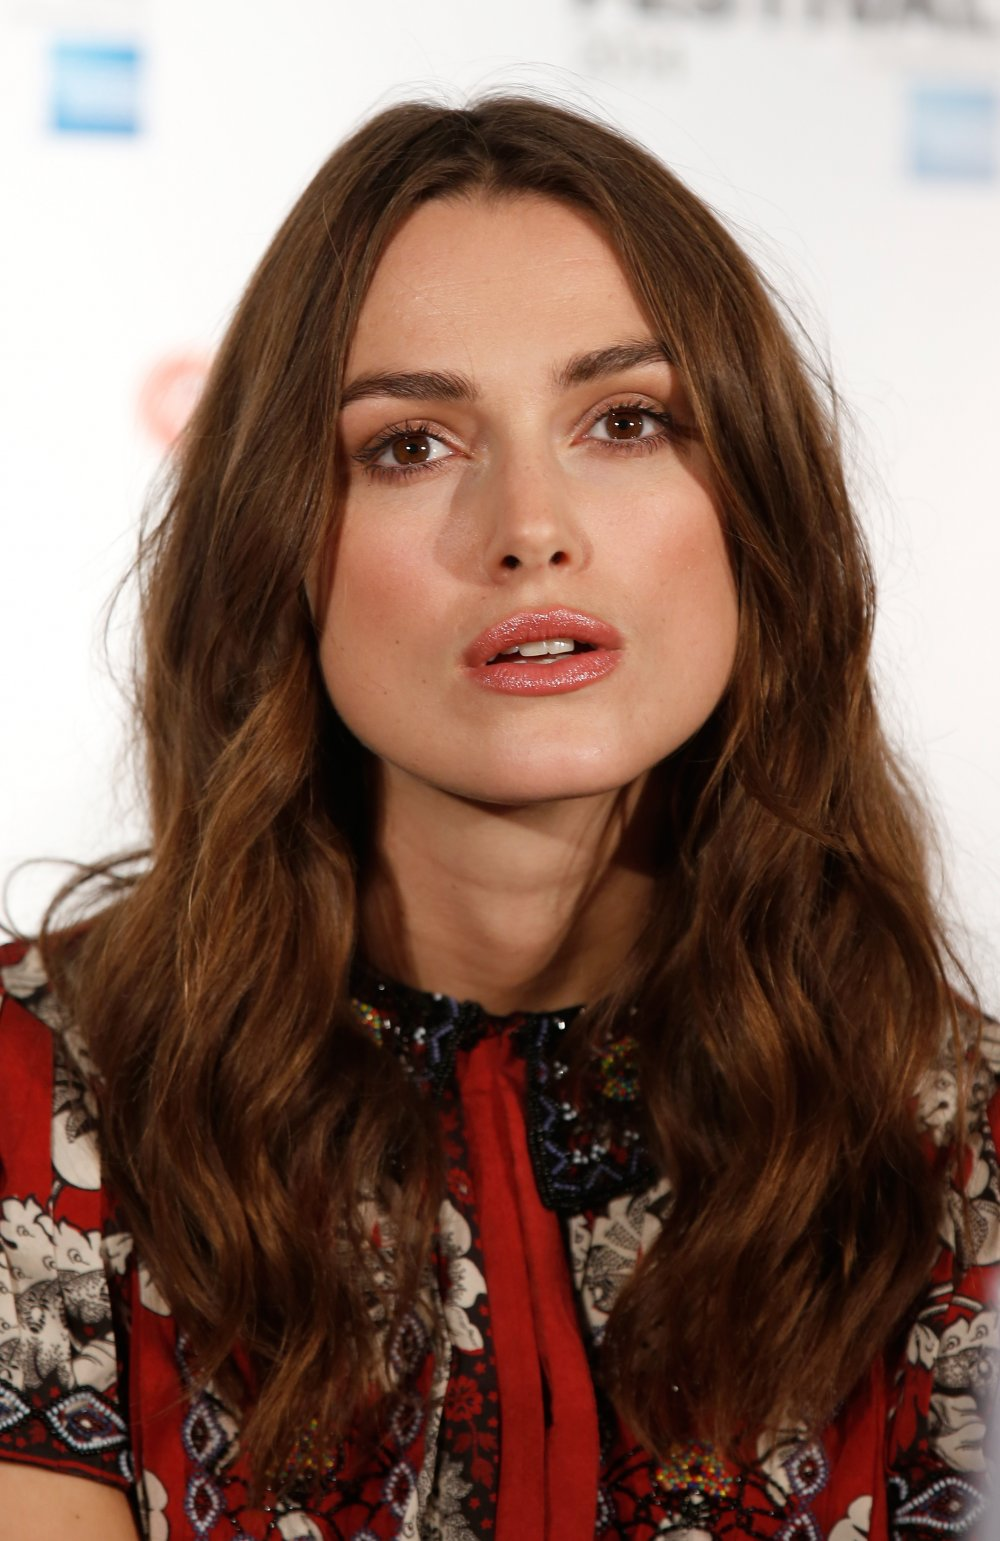 Keira Knightley at the press conference for The Imitation Game at the 58th BFI London Film Festival